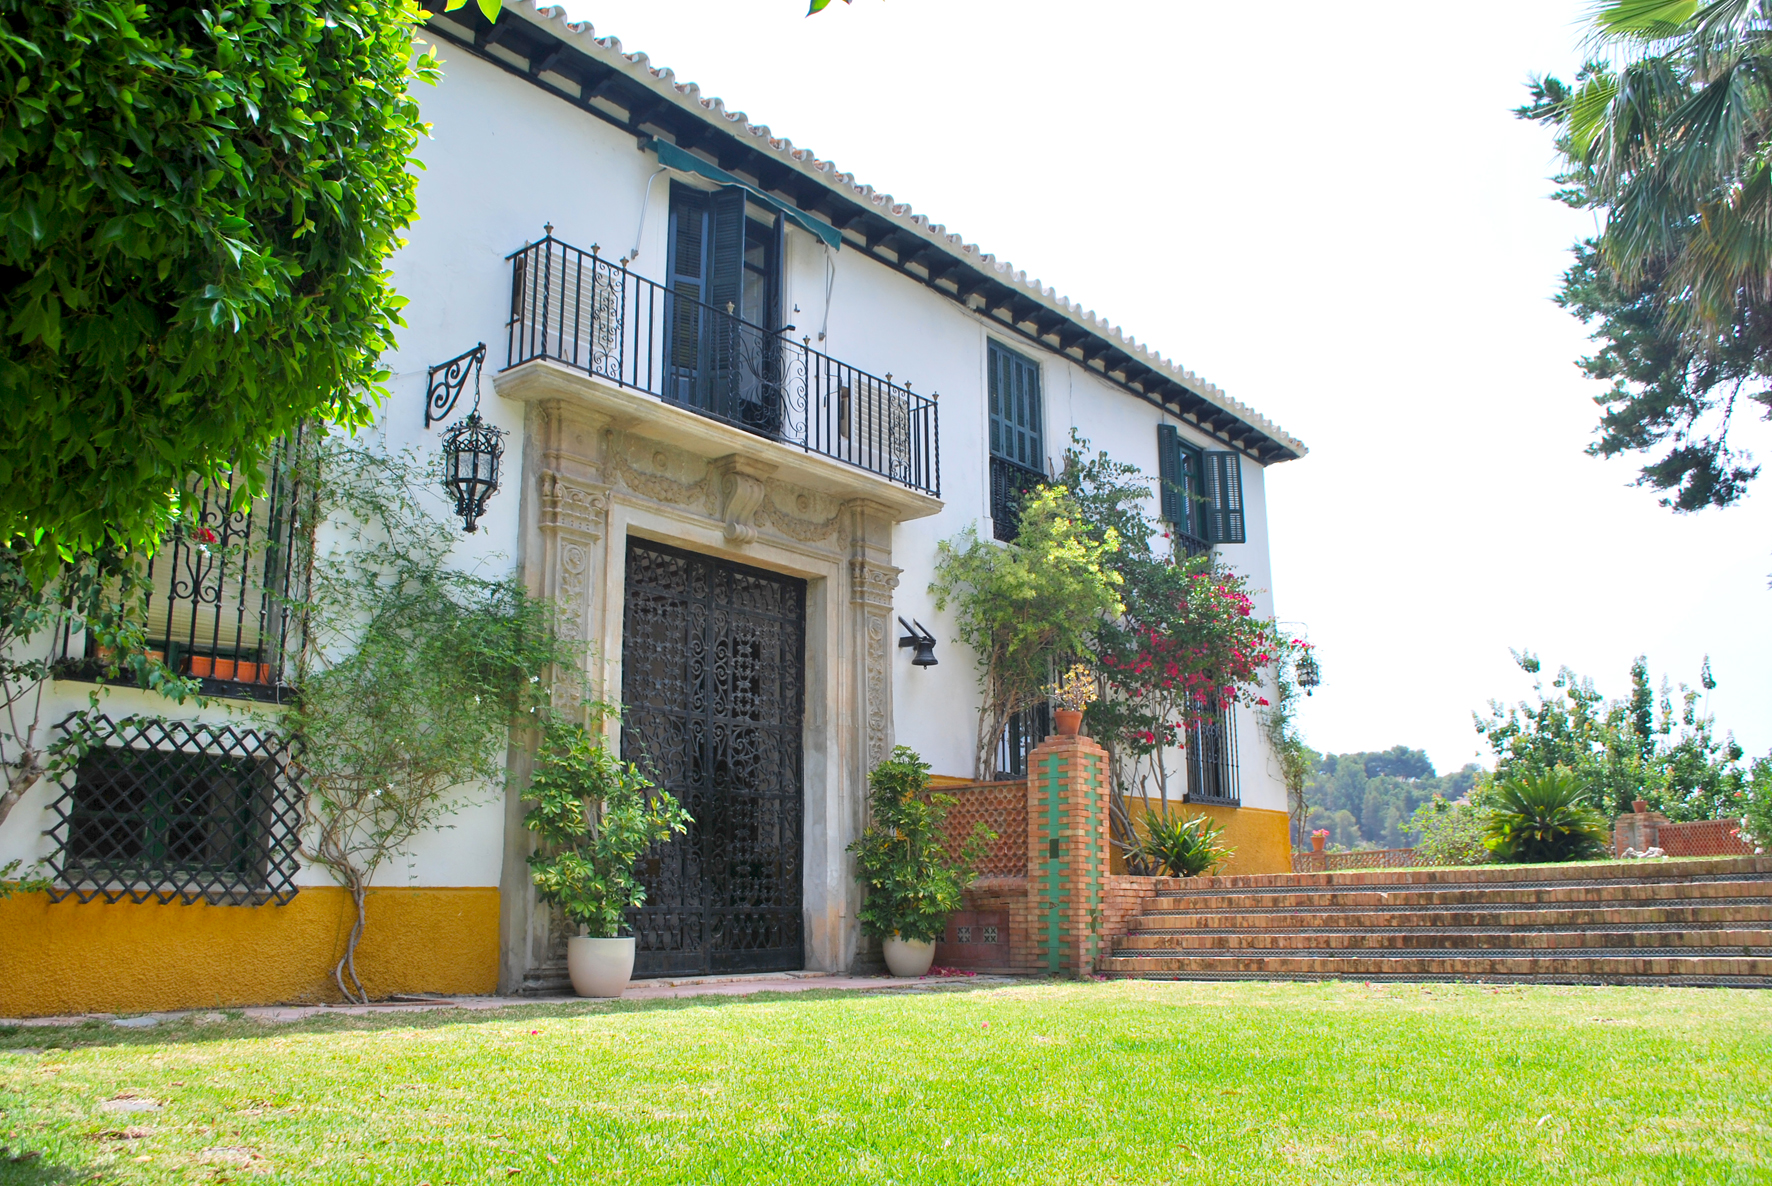 The front of Hacienda Clavero